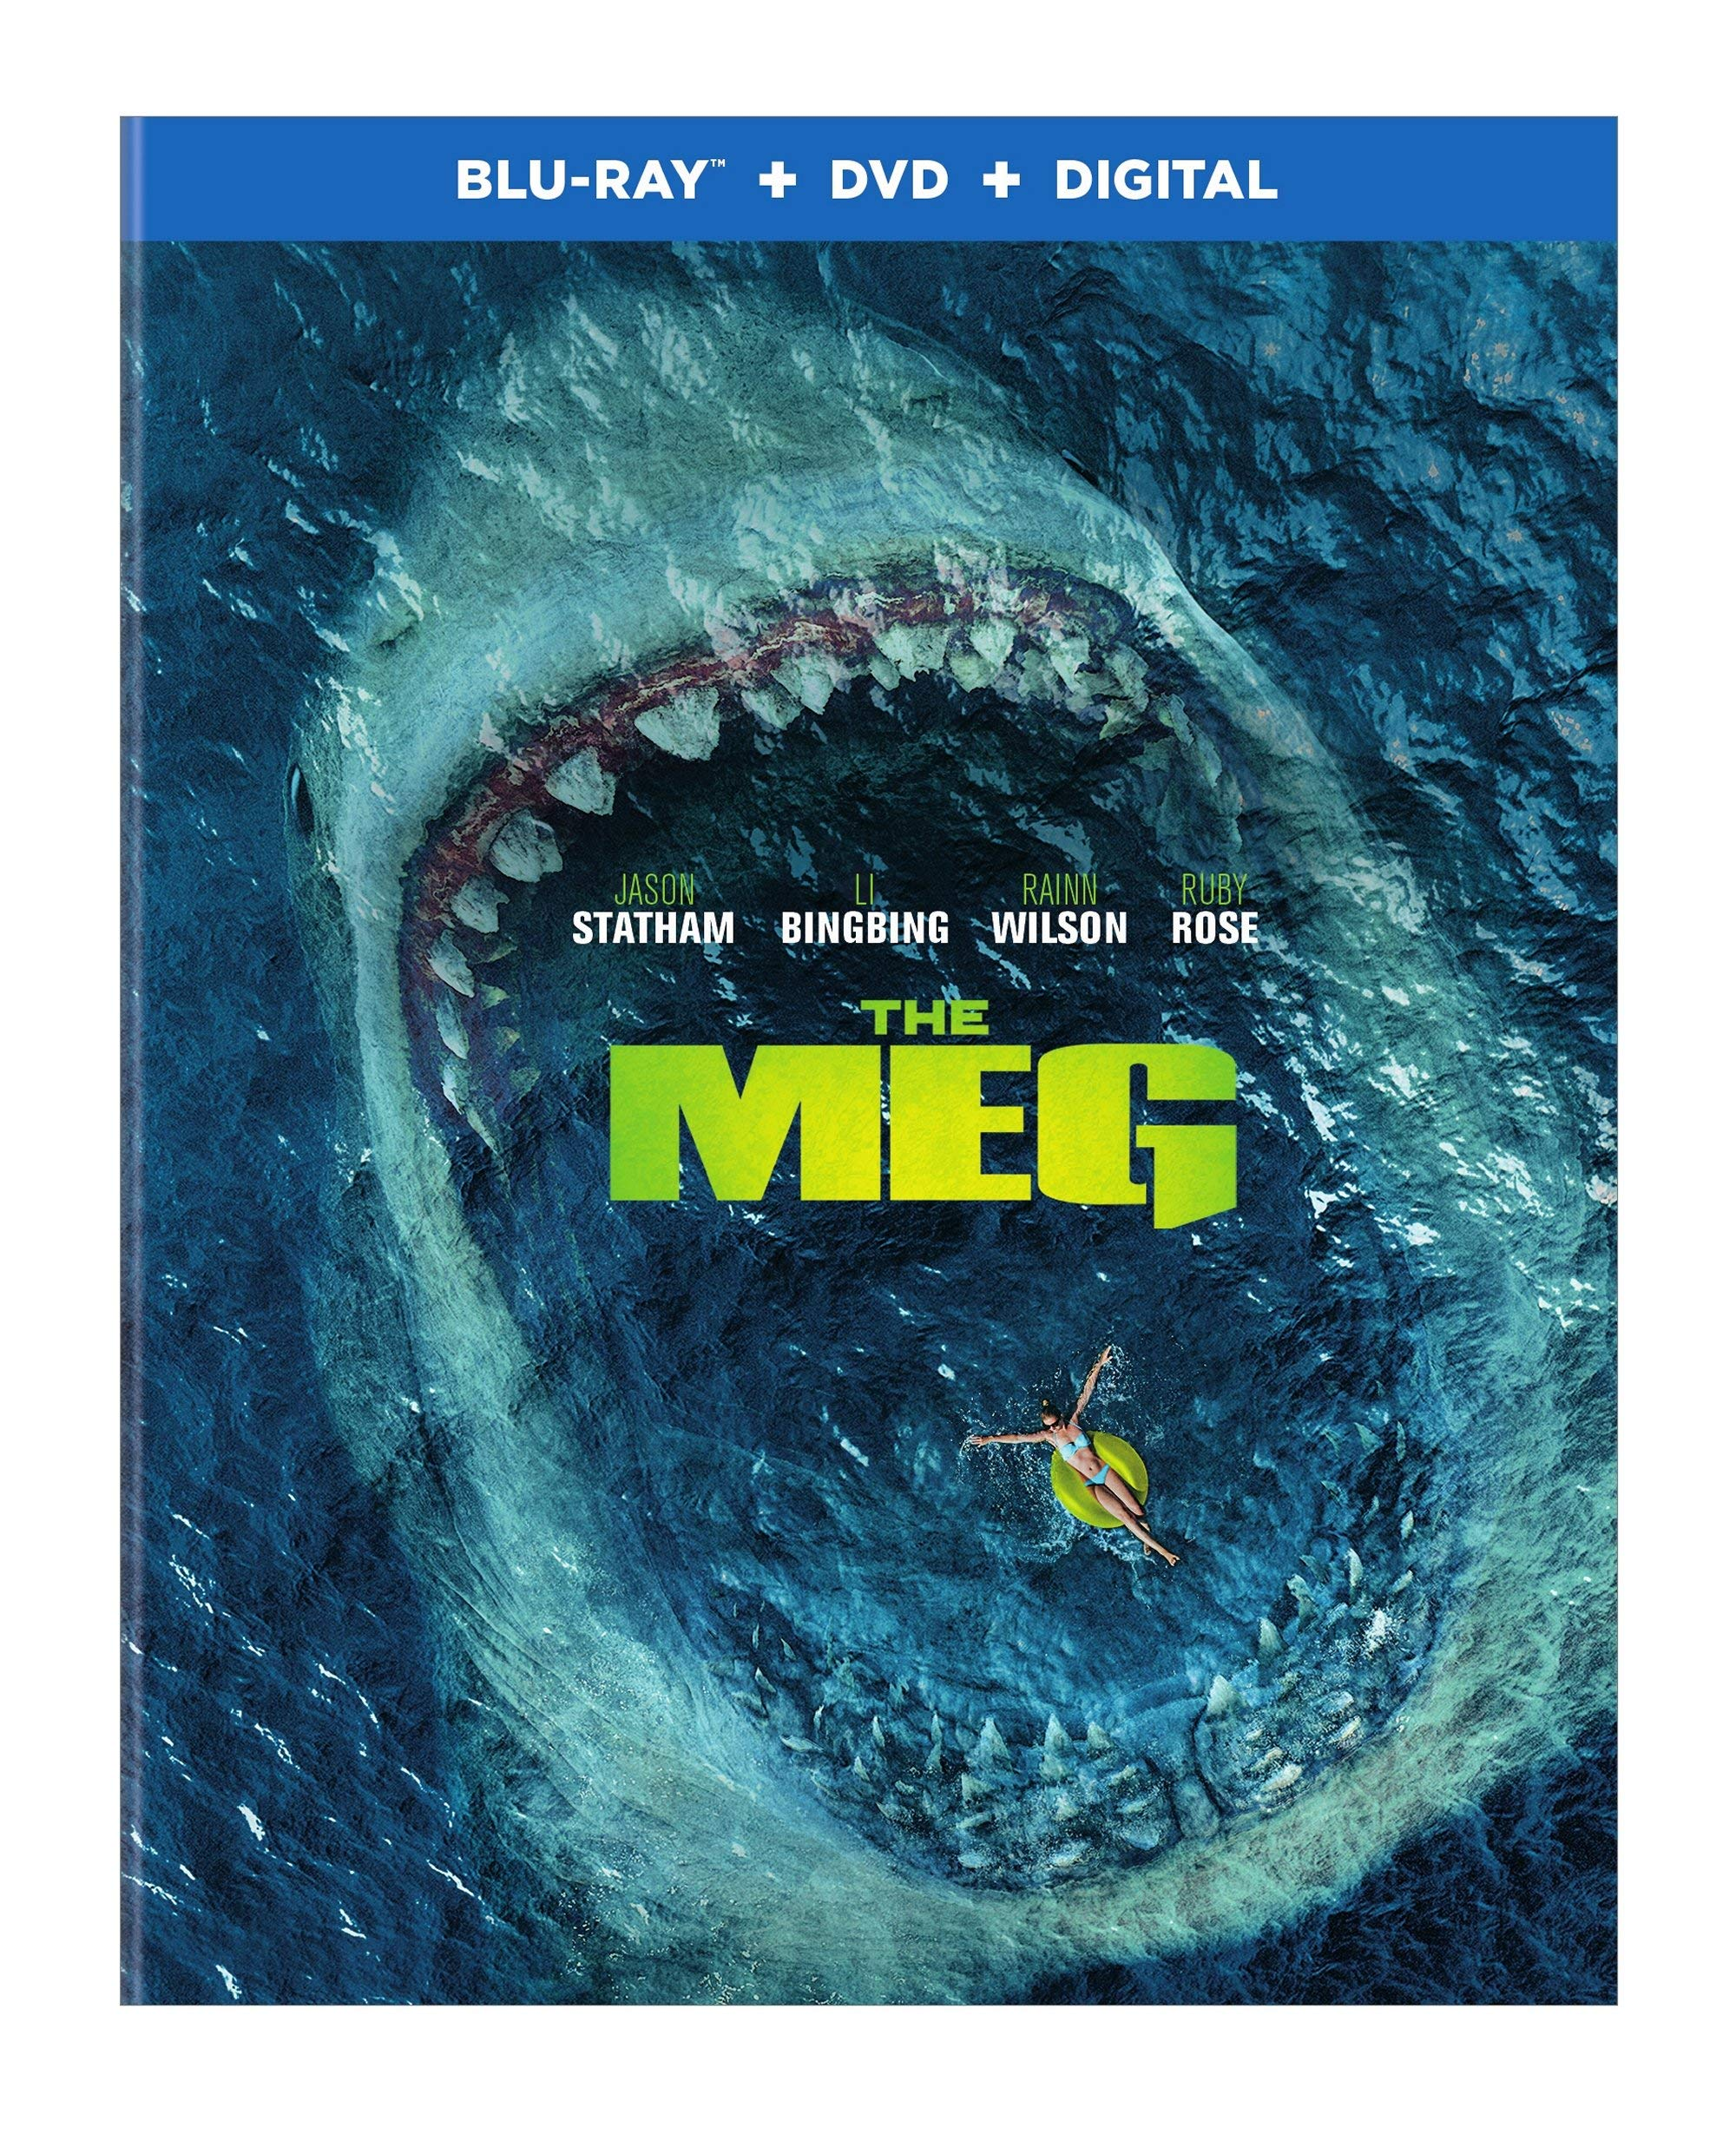 Blu-ray : The Meg (With DVD, Ultraviolet Digital Copy, Digital Copy, 2 Pack)